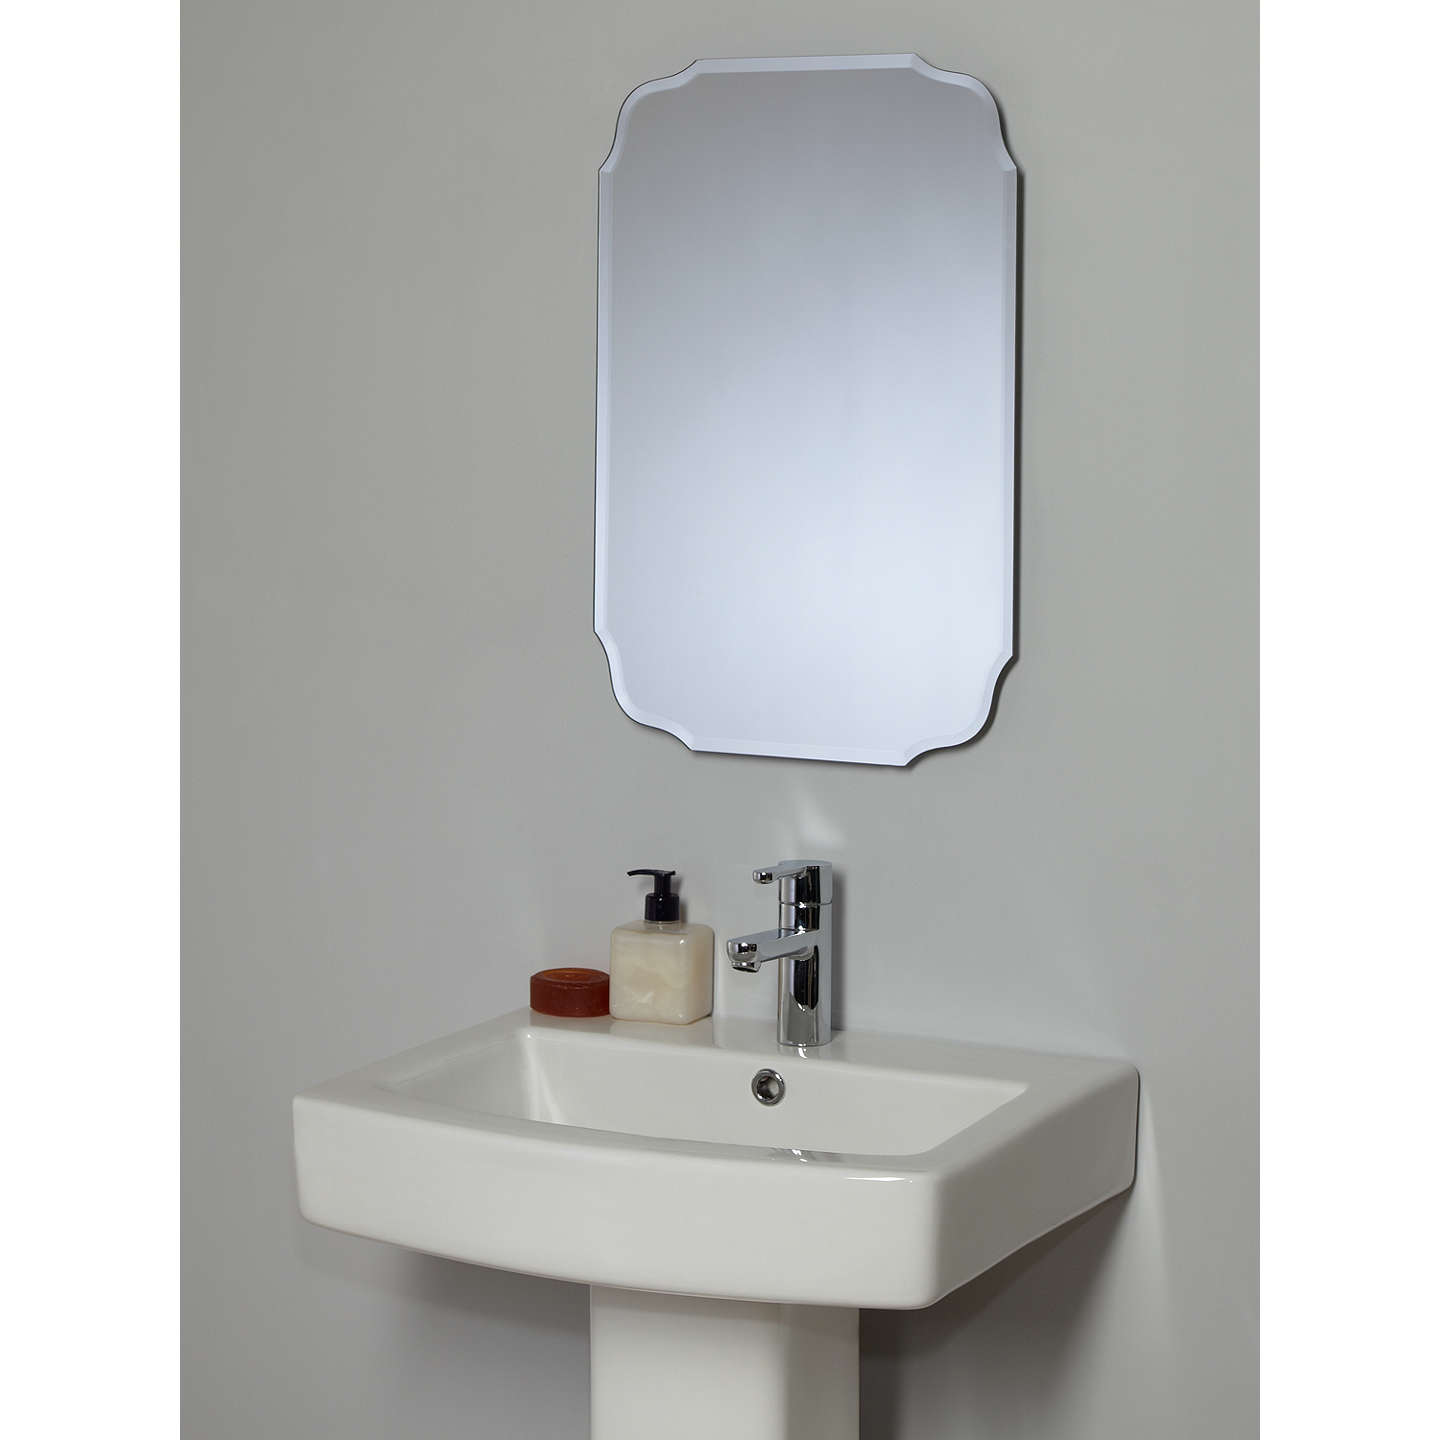 john lewis vintage bathroom wall mirror at john lewis. Black Bedroom Furniture Sets. Home Design Ideas